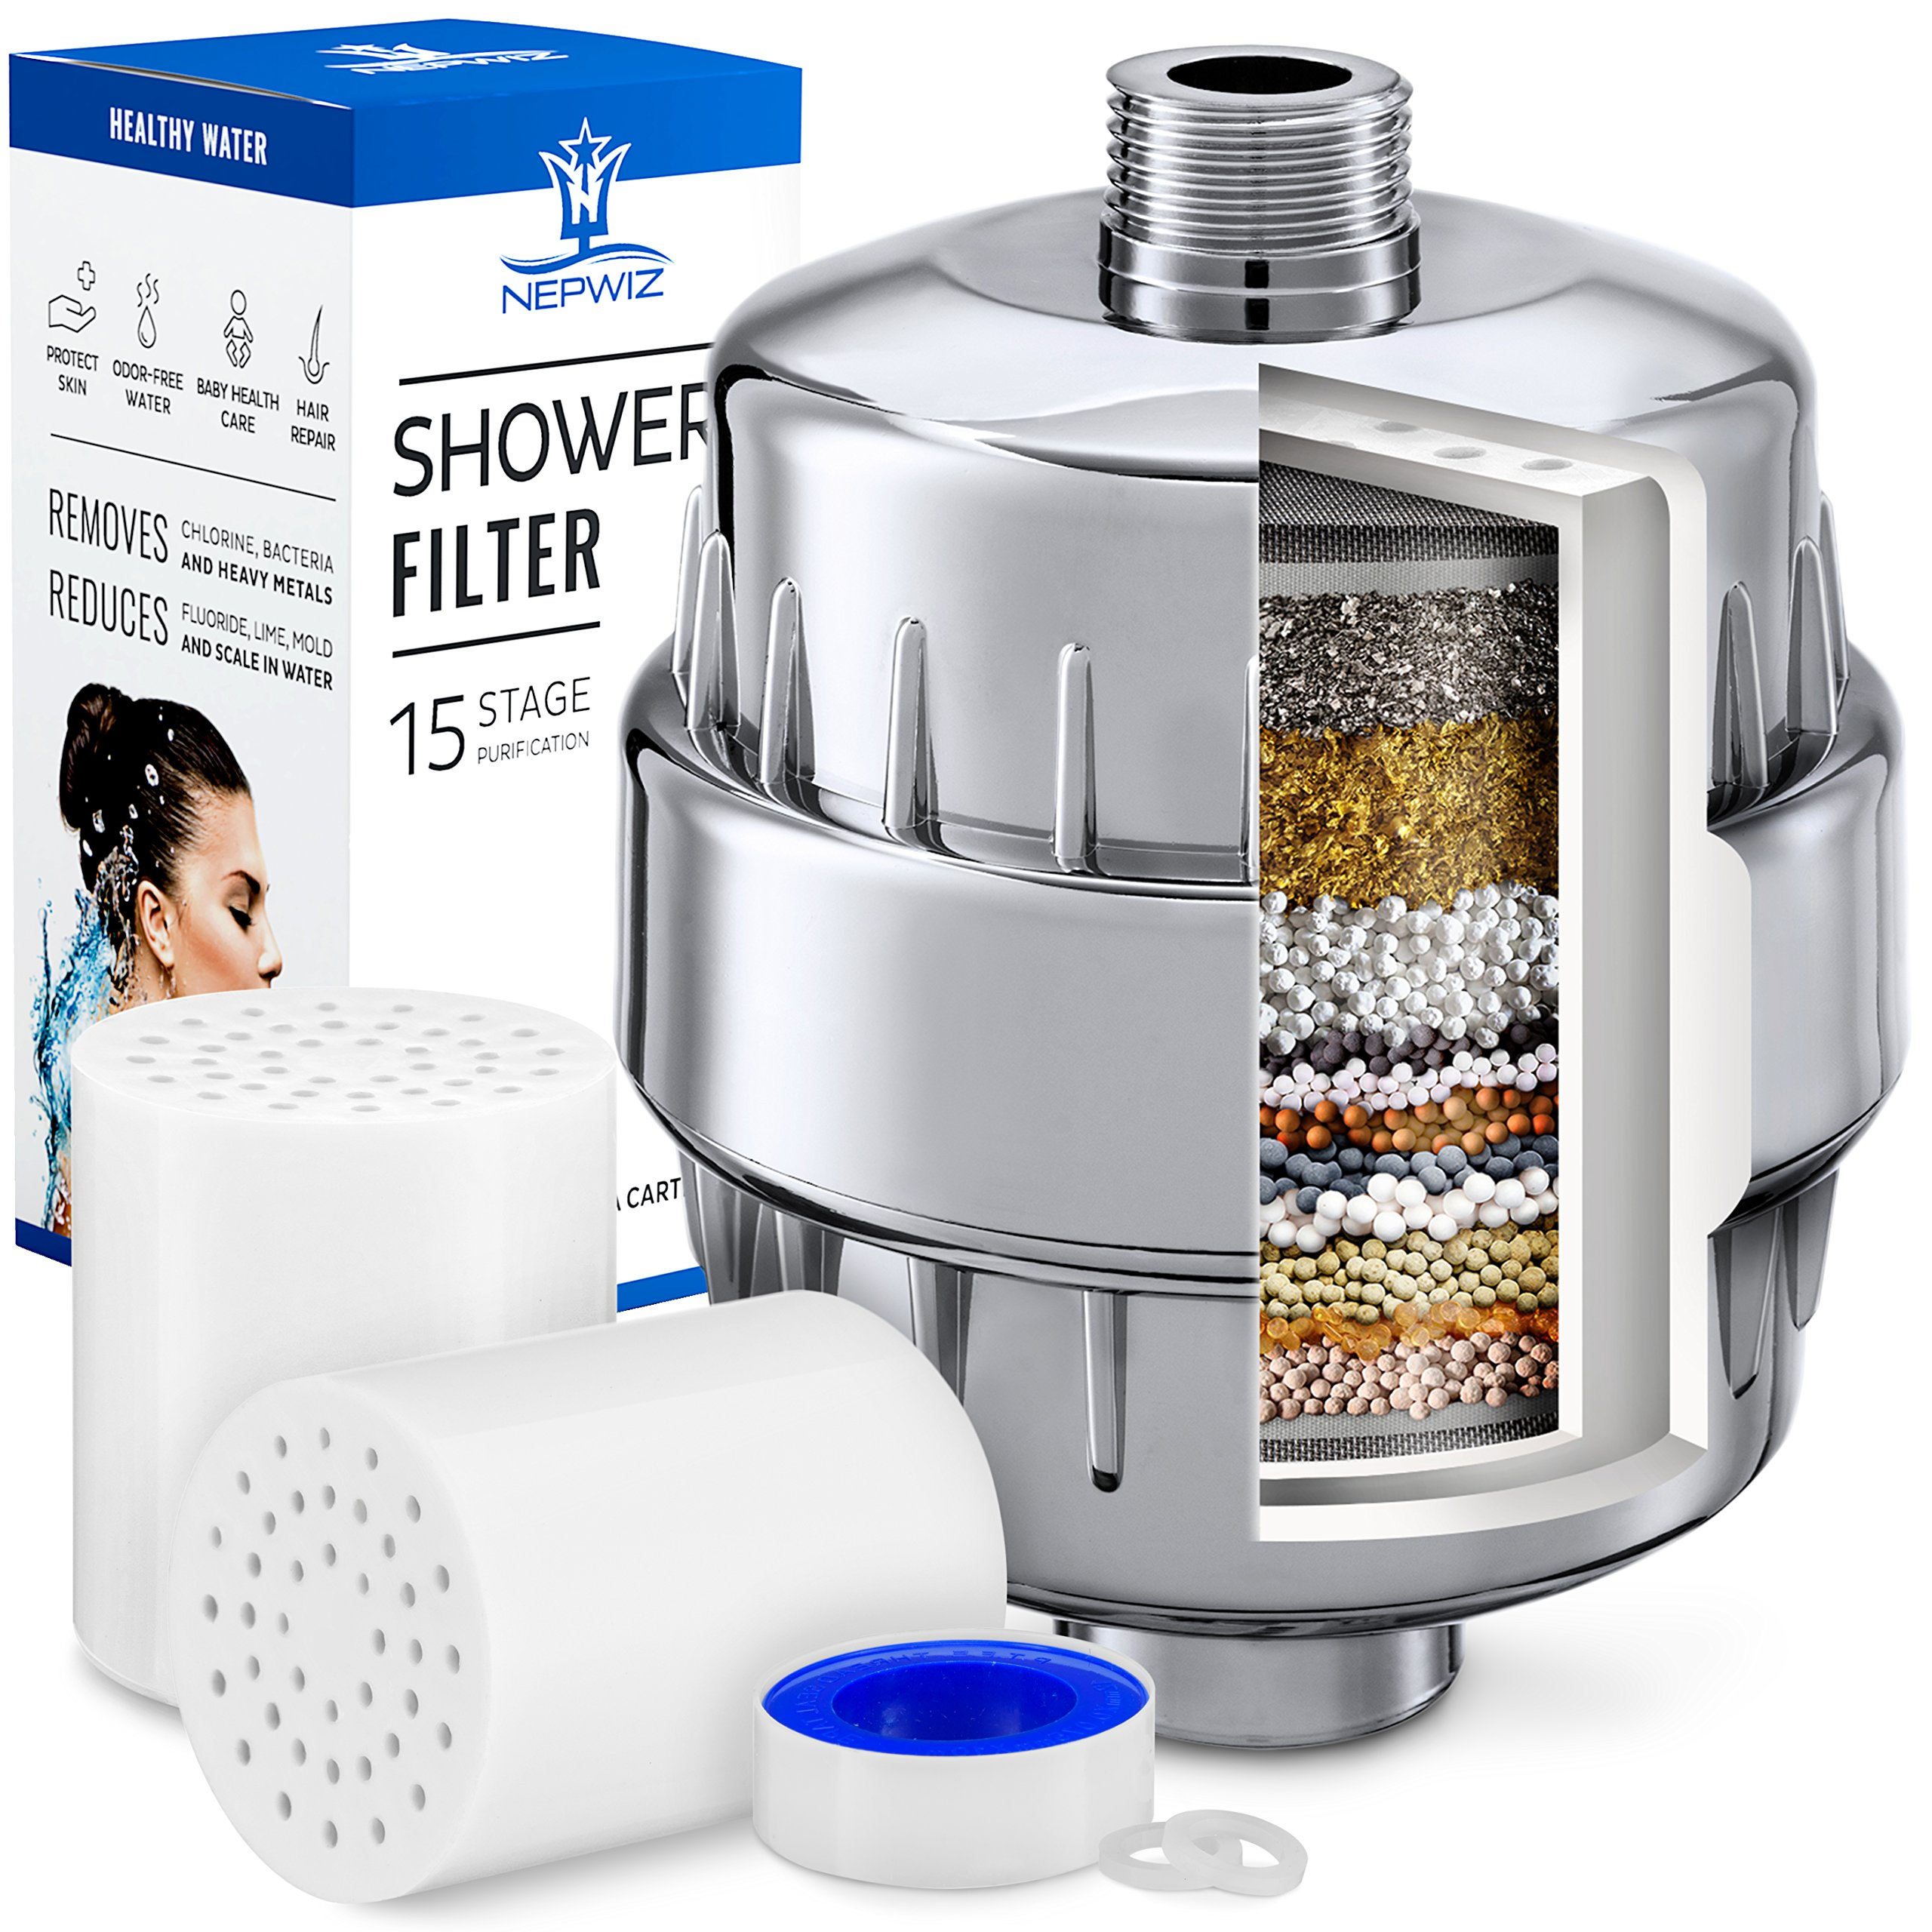 15 Stage Shower Filter with Vitamin C for Hard Water - 2 Replacement Cartridge in the Kit - Shower Water Filter Removes Chlorine & Sediments - Reduces Flouride & Chloramine - Fits Any Shower Head